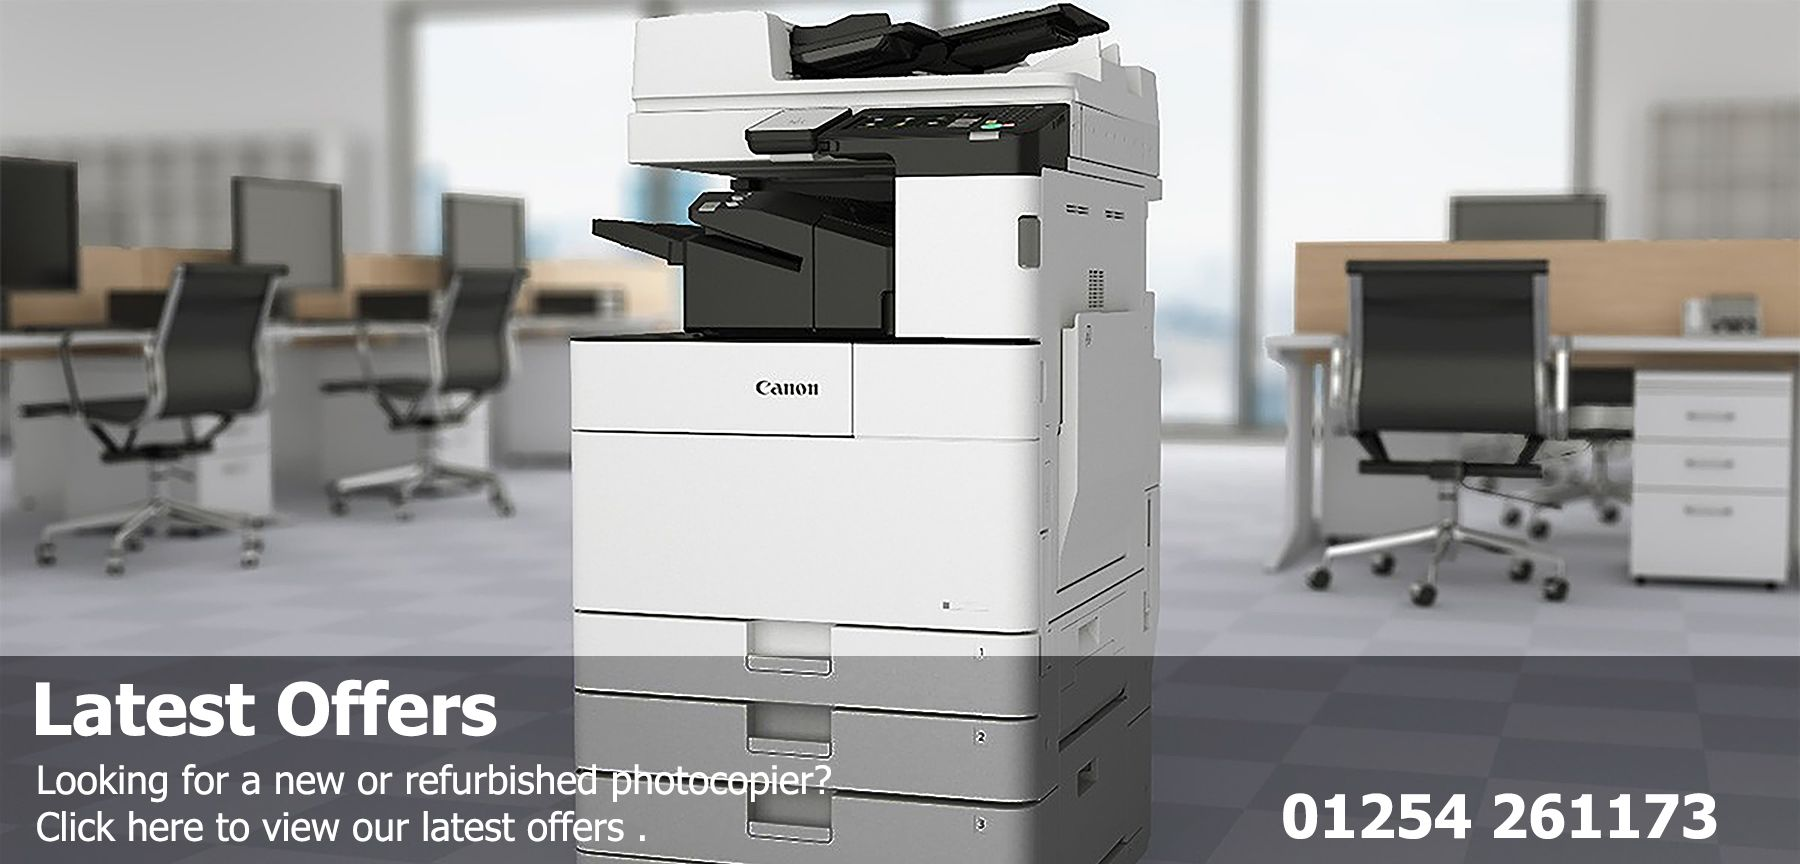 North West PHOTOCOPIER SUPPLIER - LEASE RENT PHOTOCOPIER IN BLACKBURN